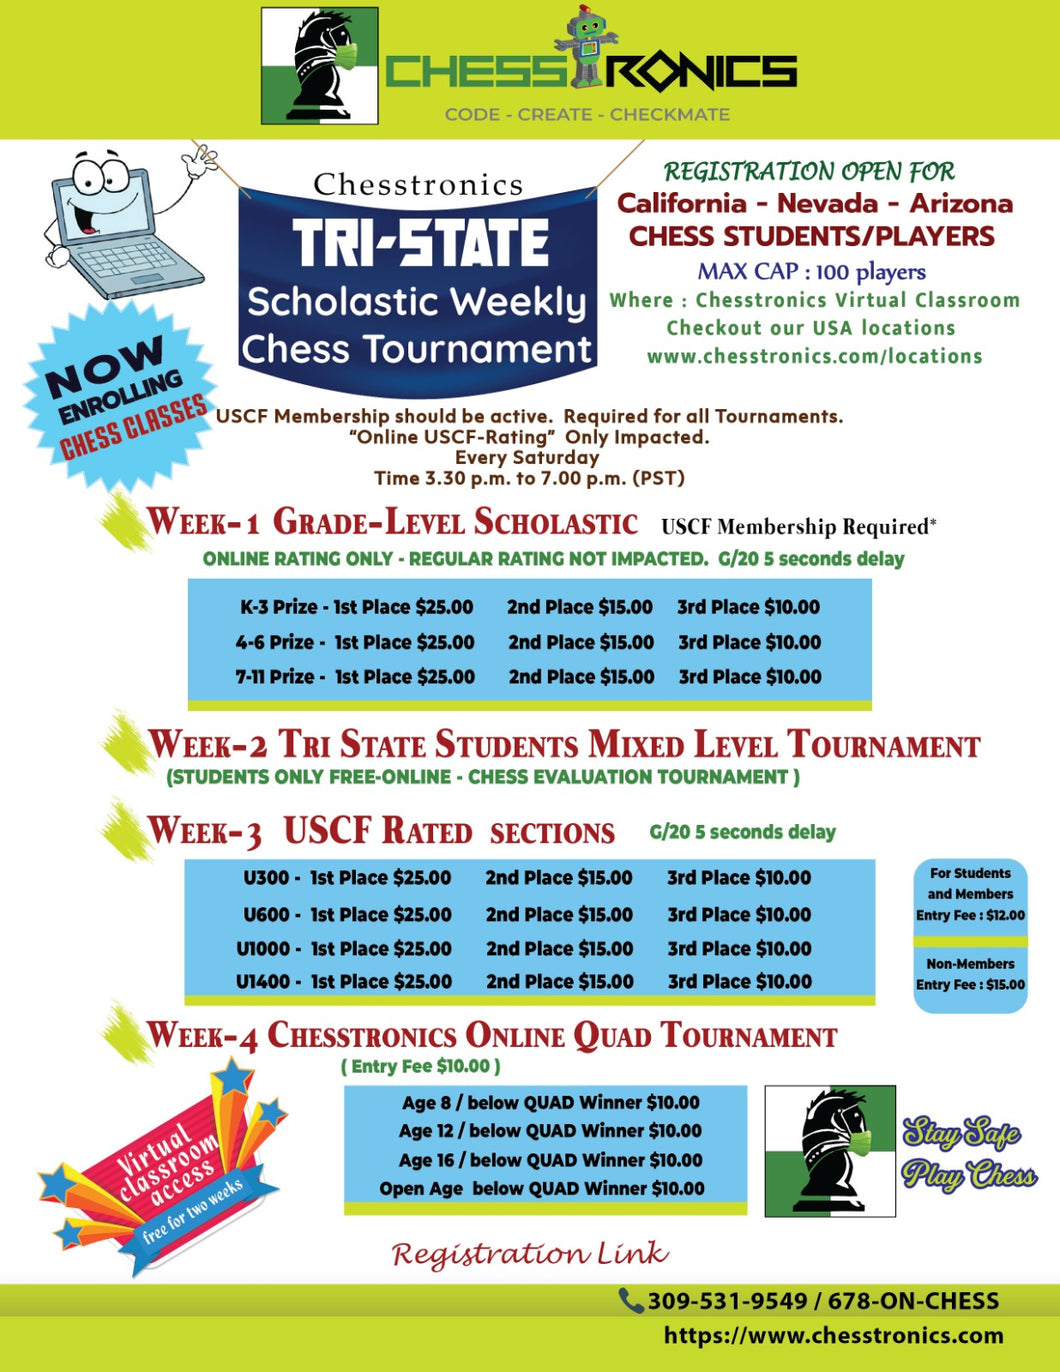 K-12 Tri-State-West Online USCF Rated Tournament - Every Week Saturday (4.00 p.m. to 7.00 p.m. PST)